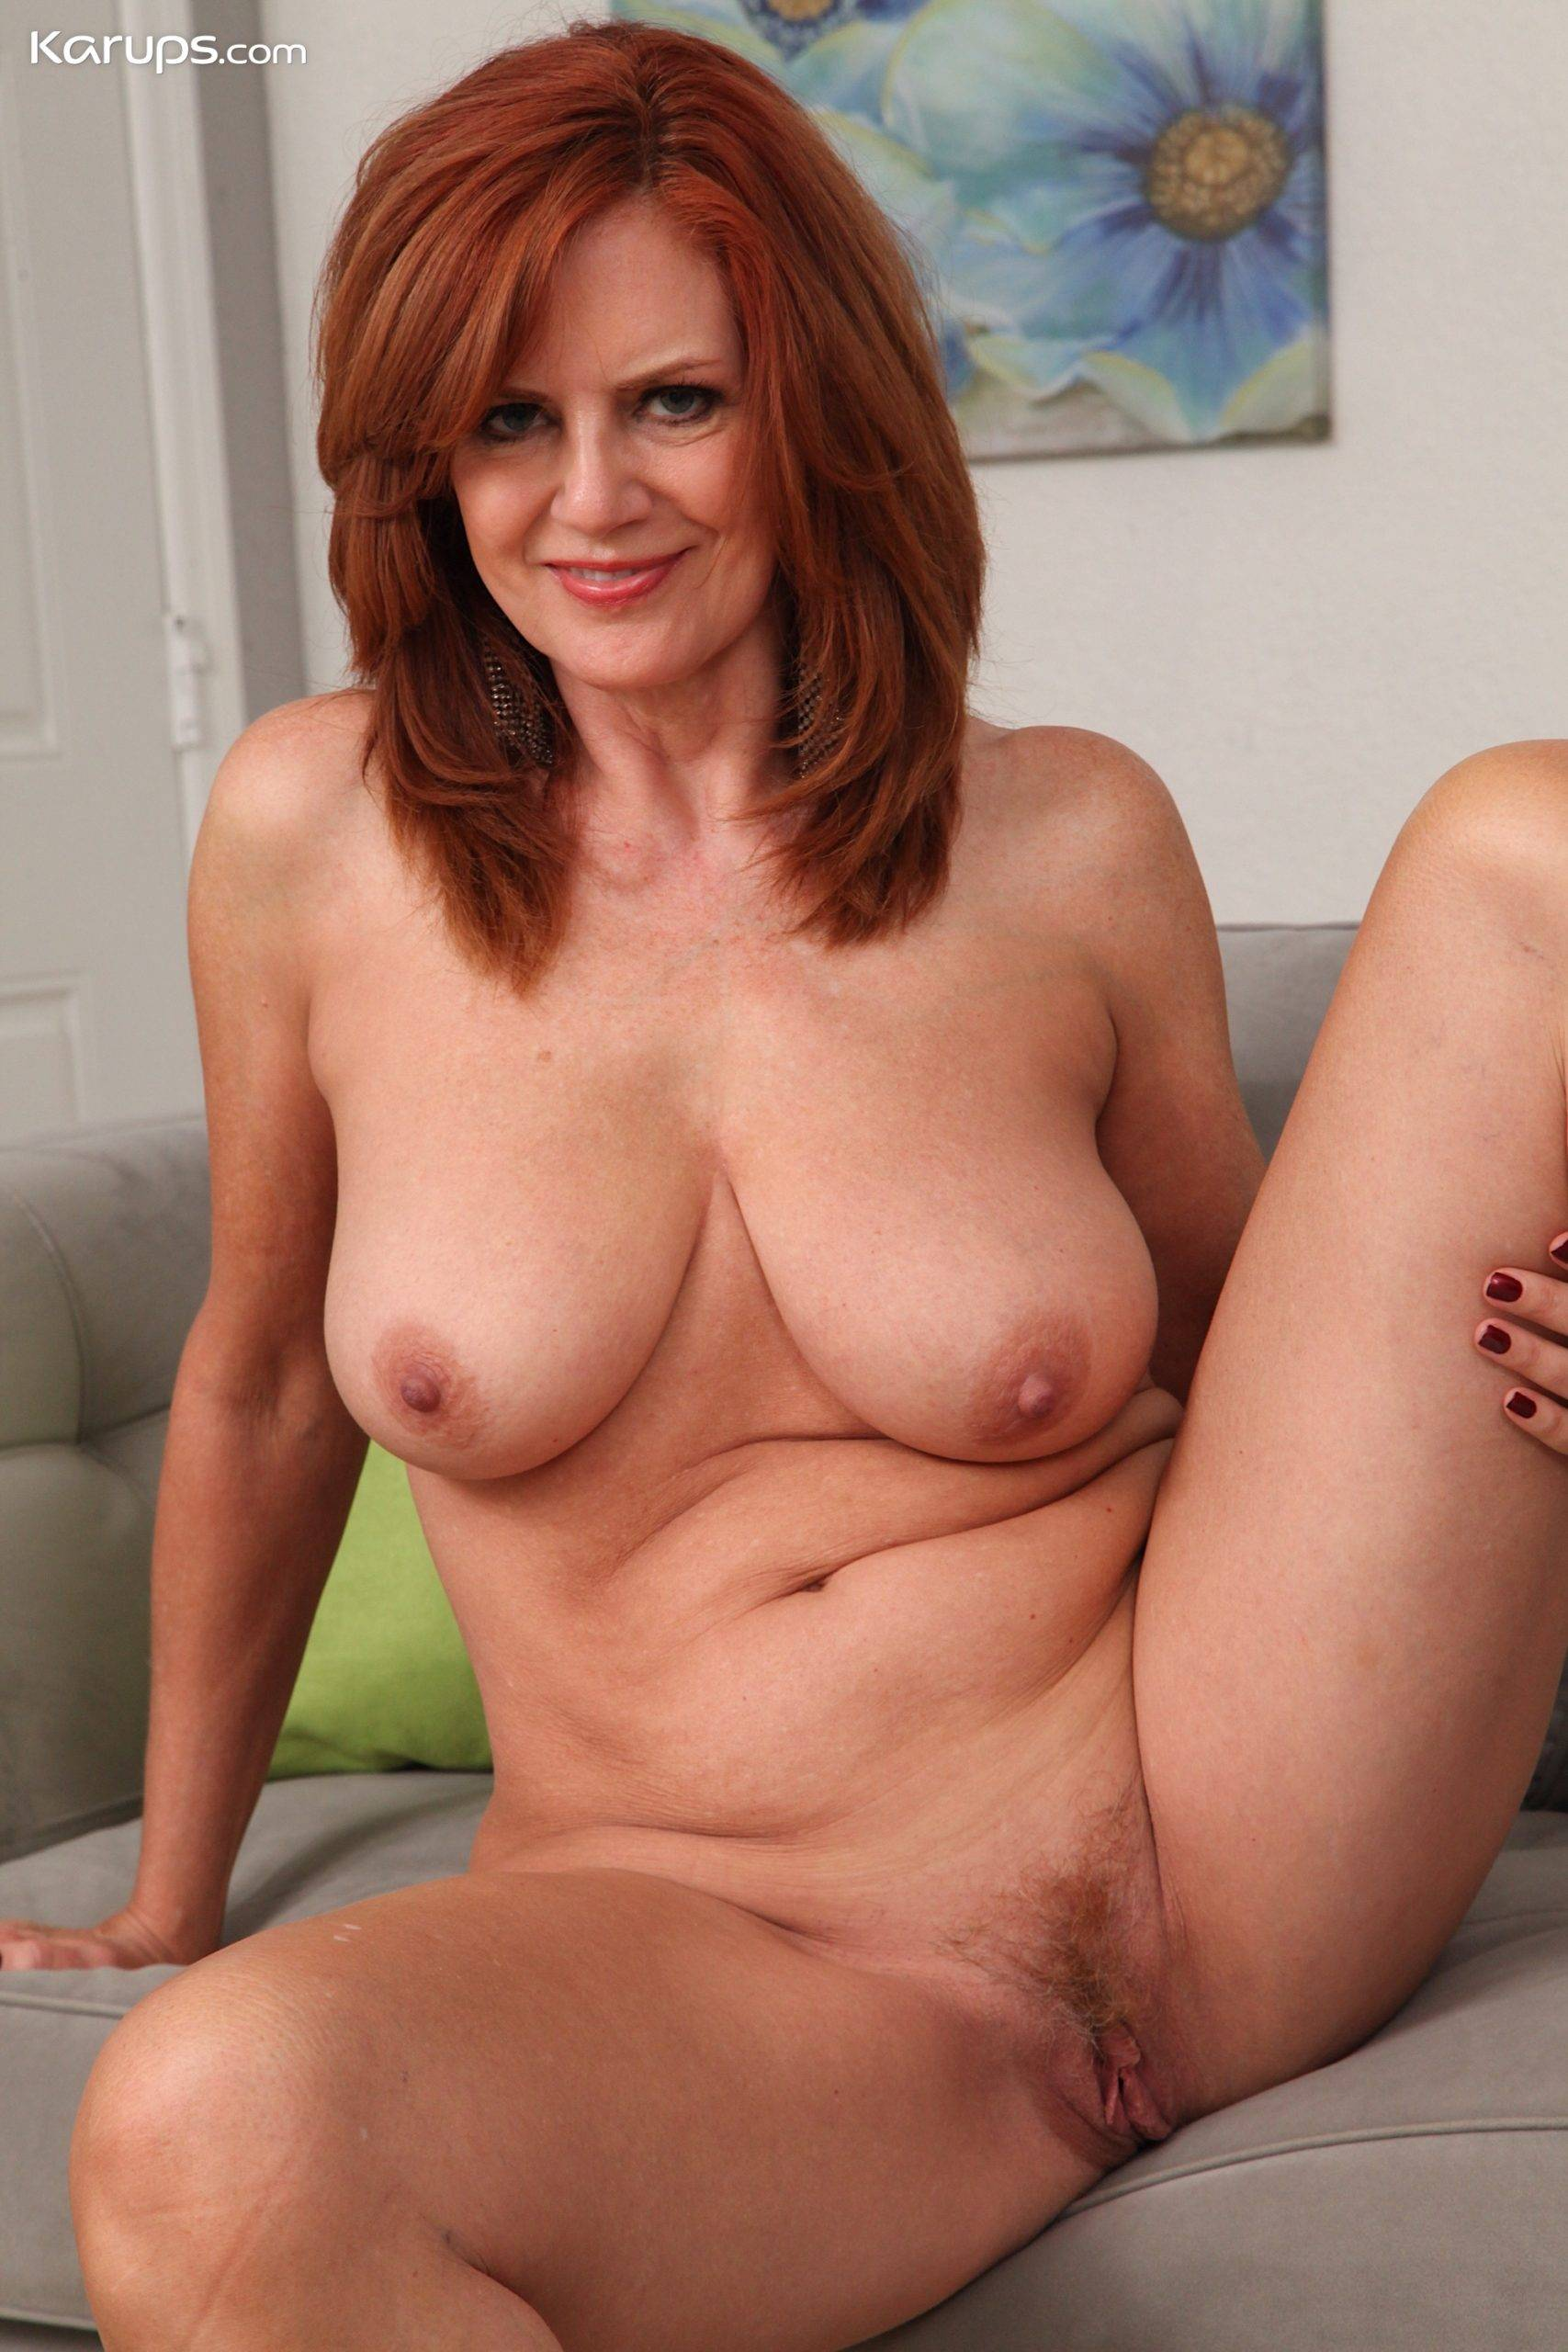 Sexy older redhead Andi James strips off all her clothes at Karupsow